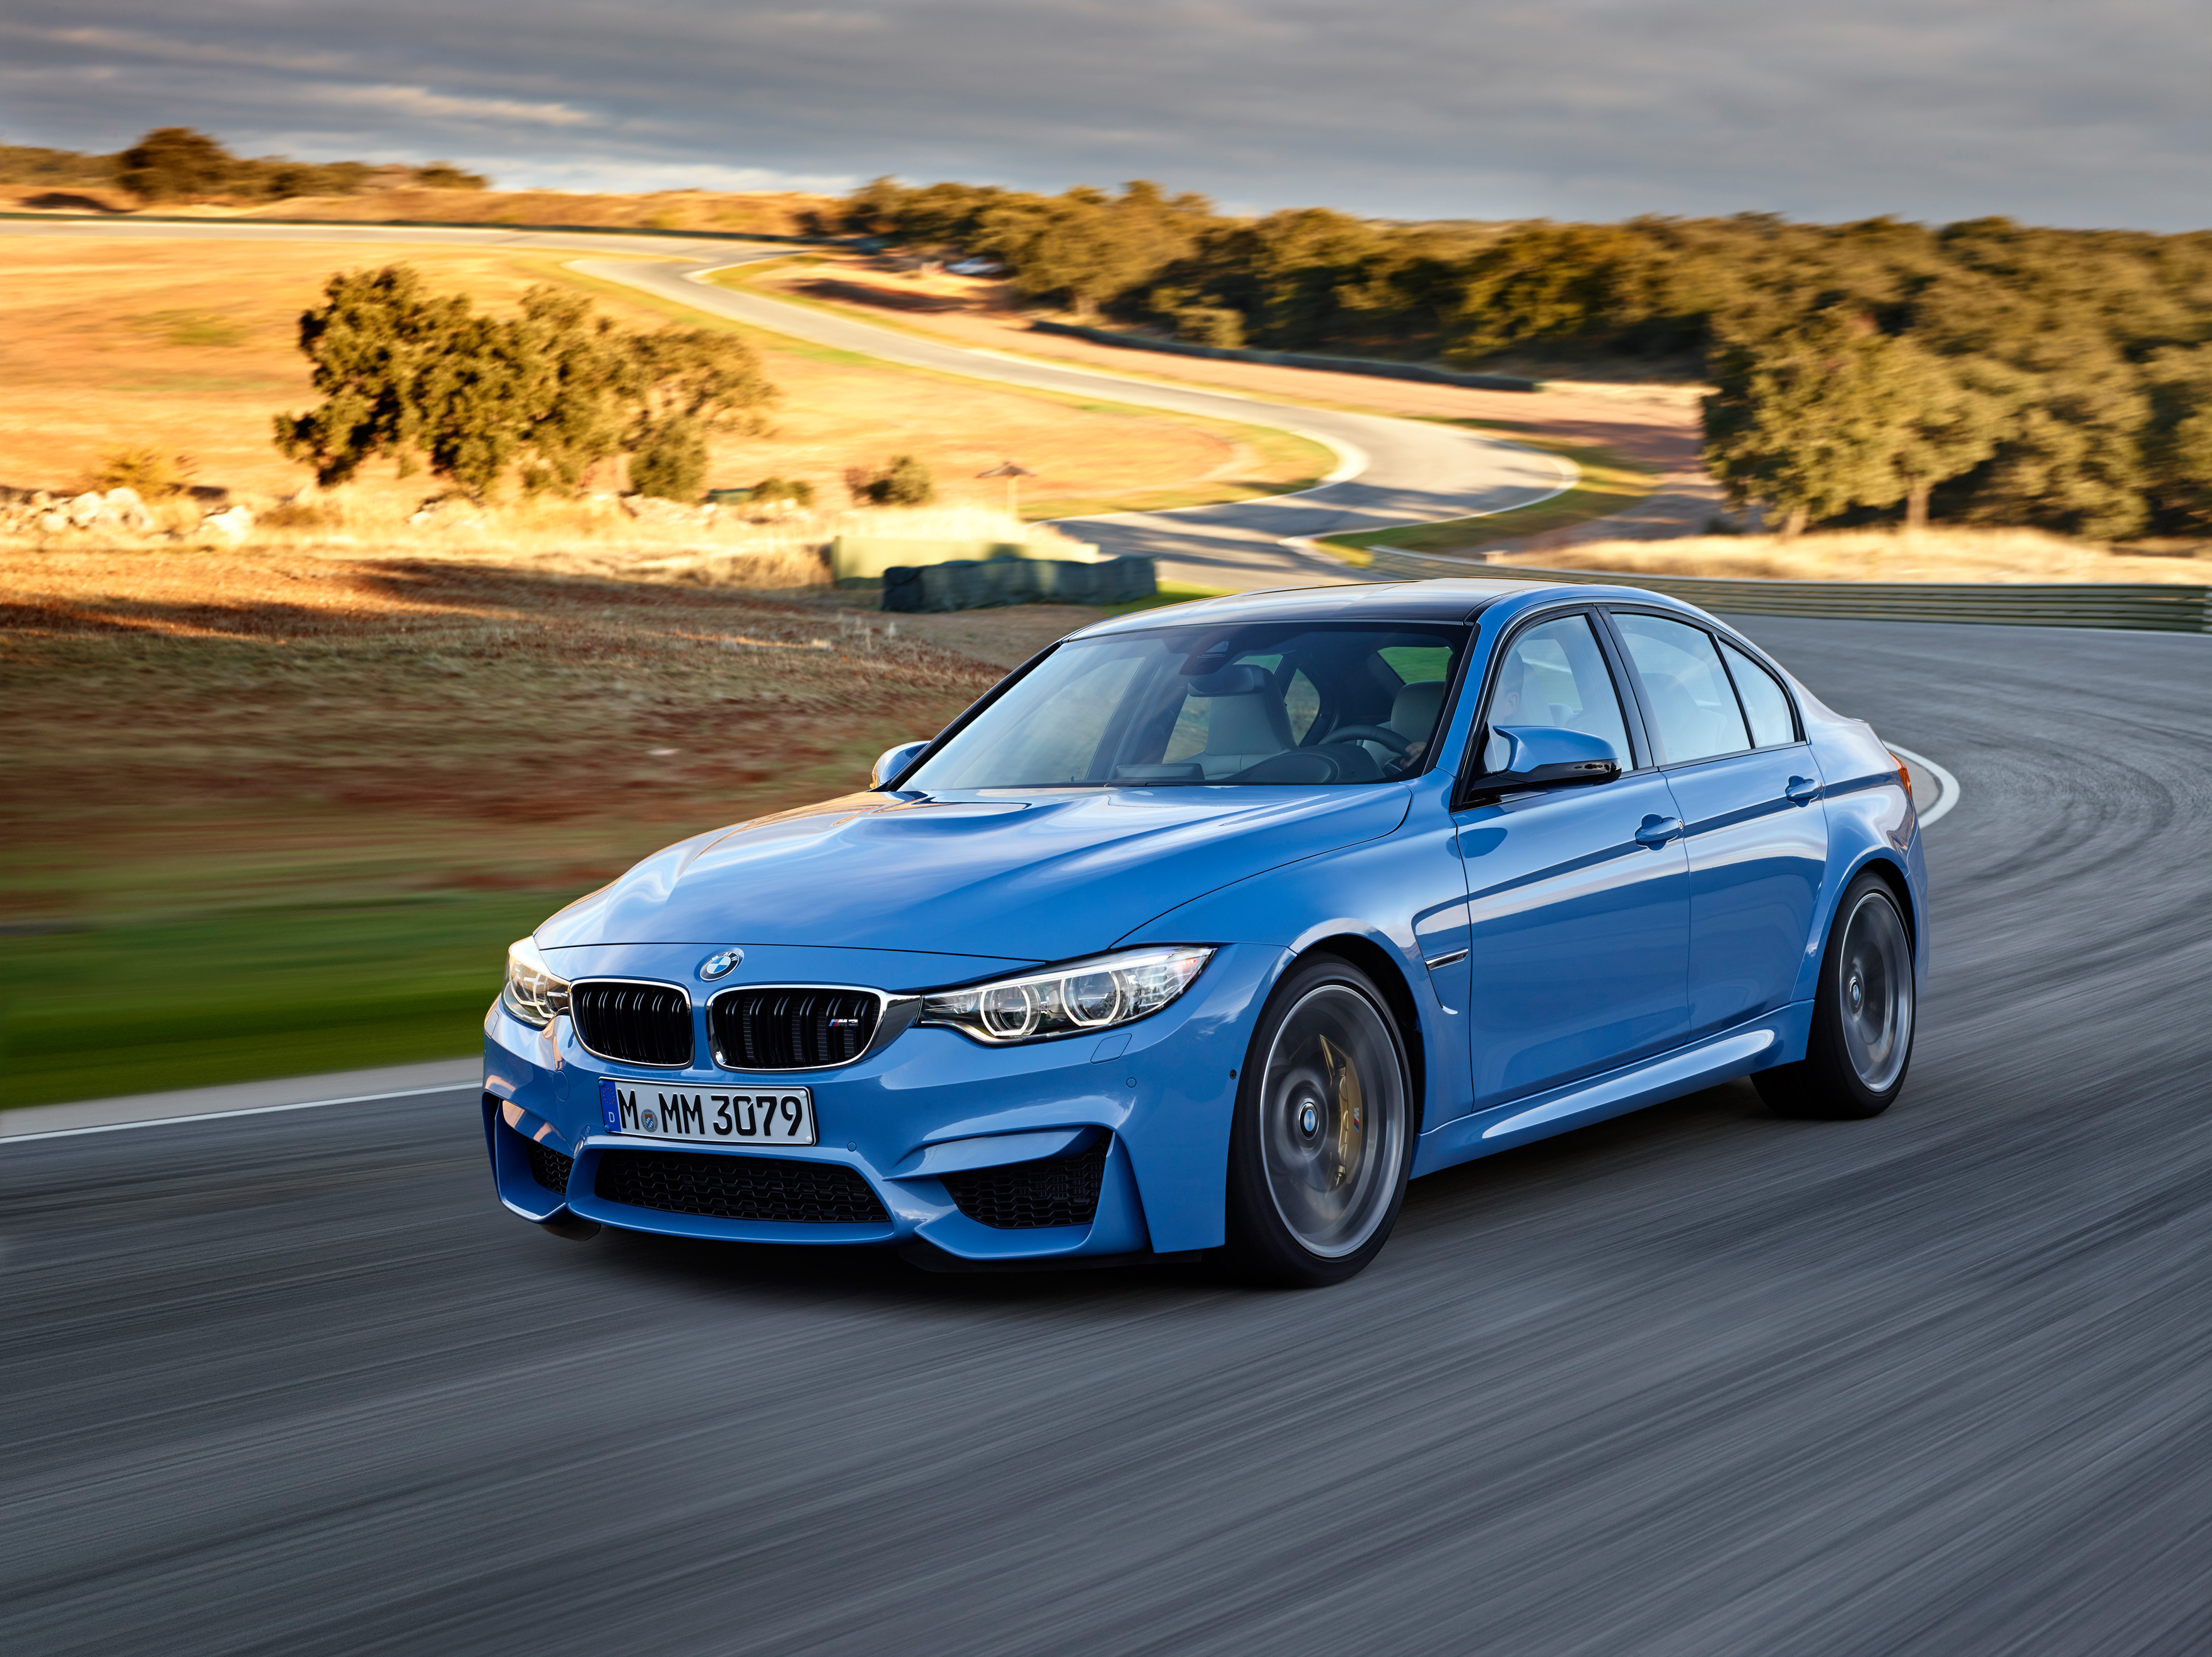 2015 BMW M3 Sedan AND M4 Coupe | THE SMADE JOURNAL